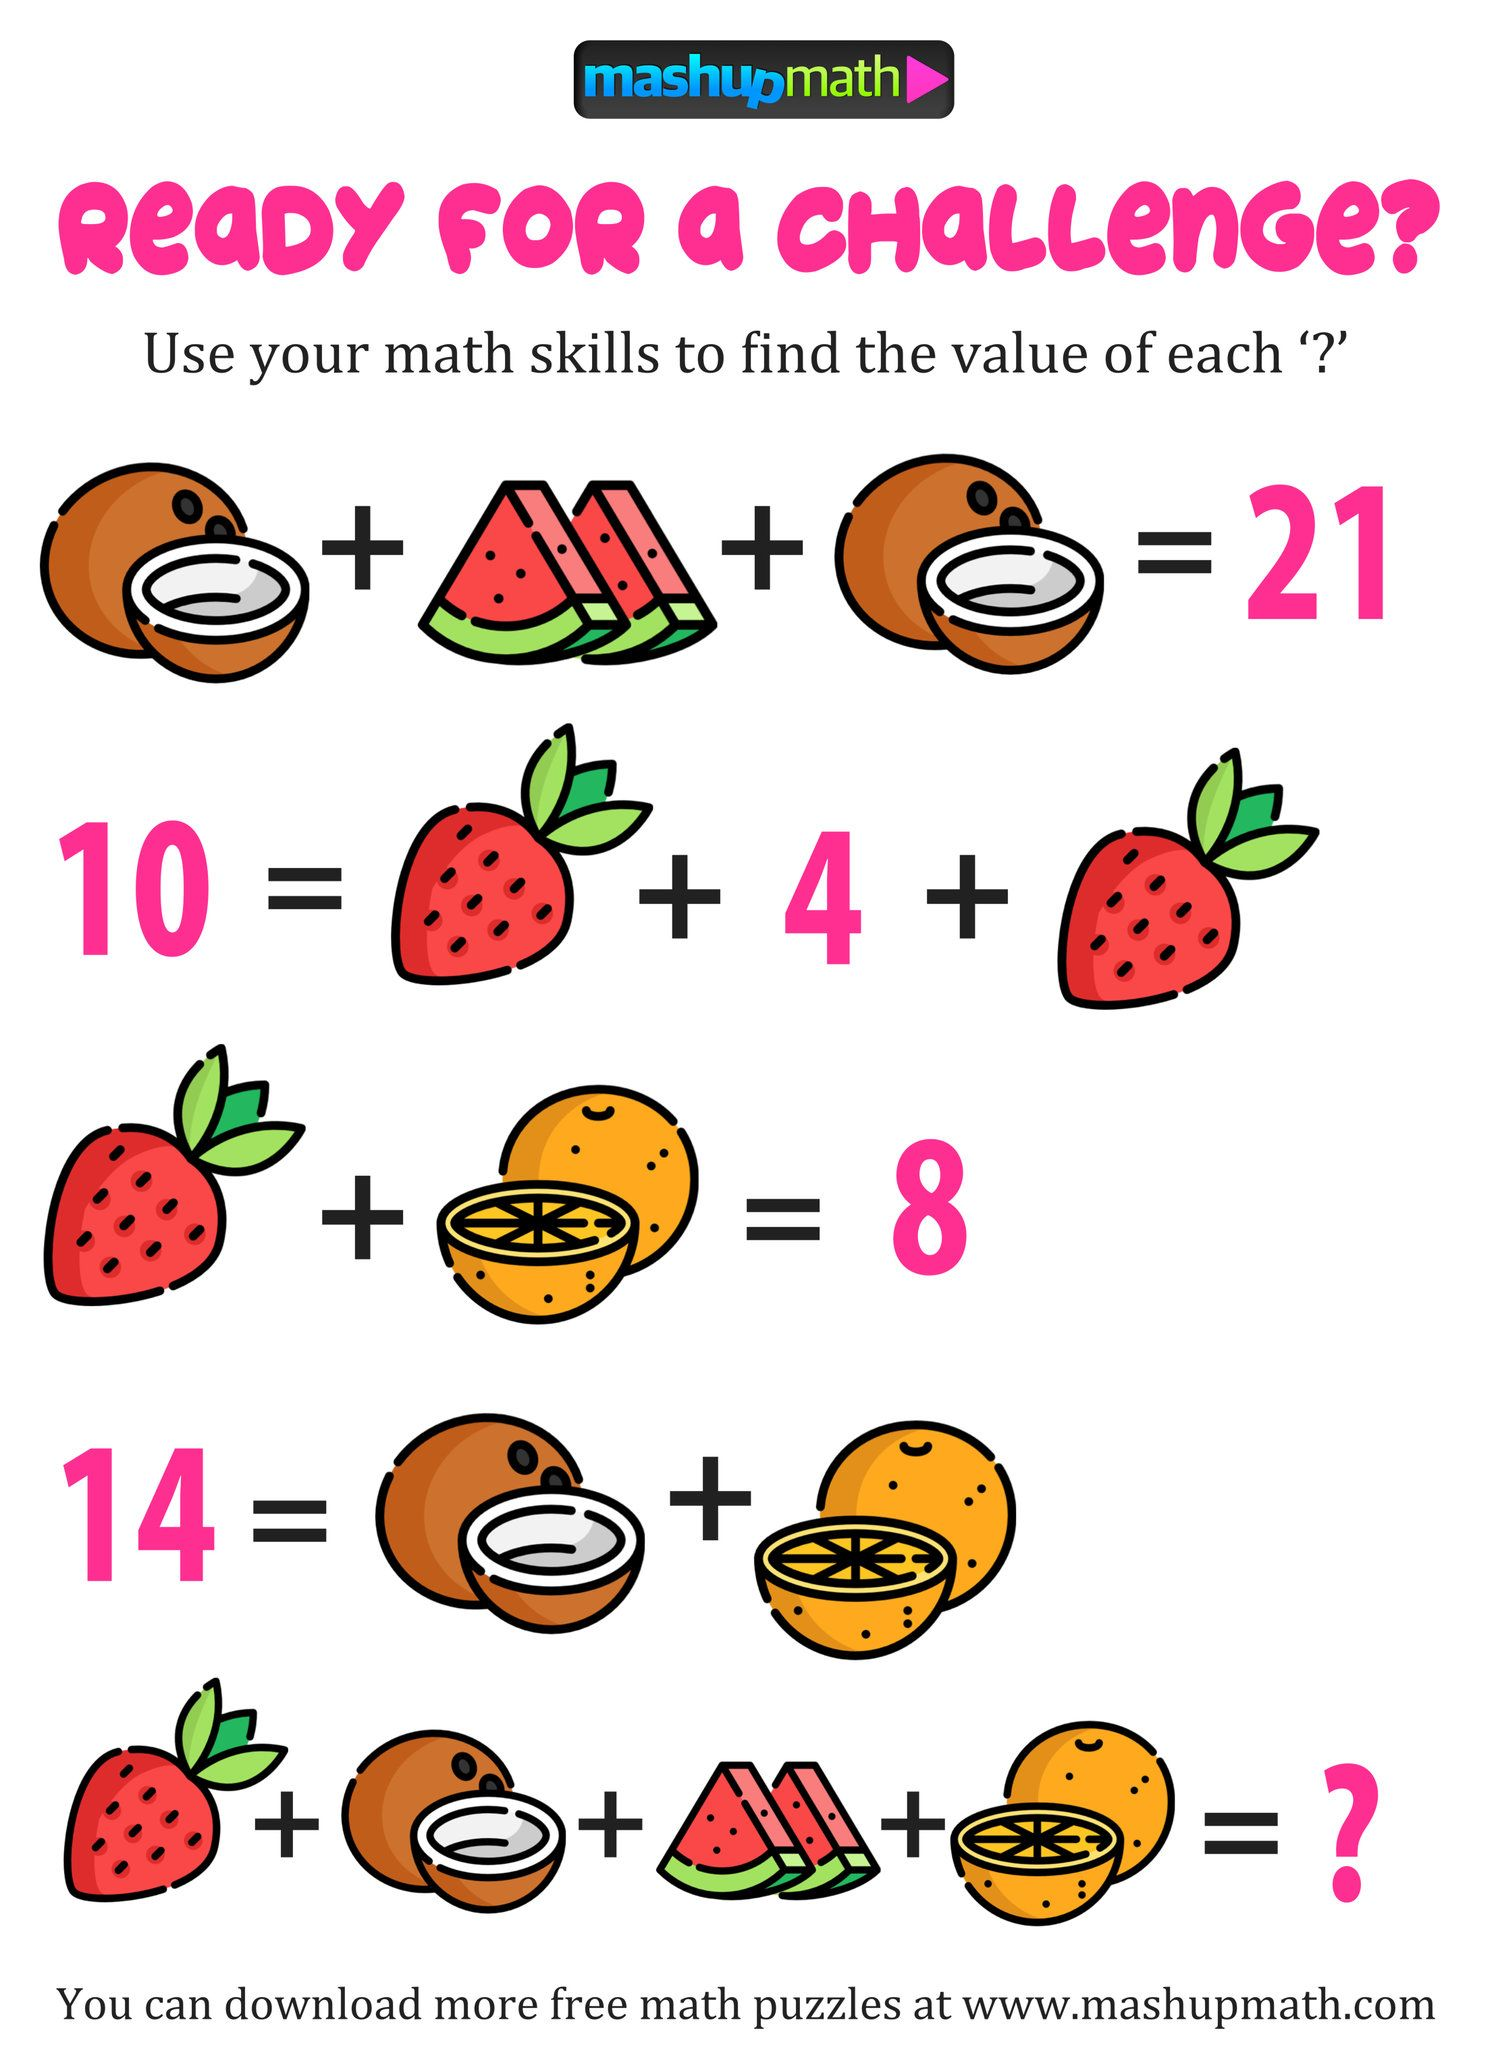 Fixed Jpg Maths Puzzles Math Puzzles Middle School Math Riddles